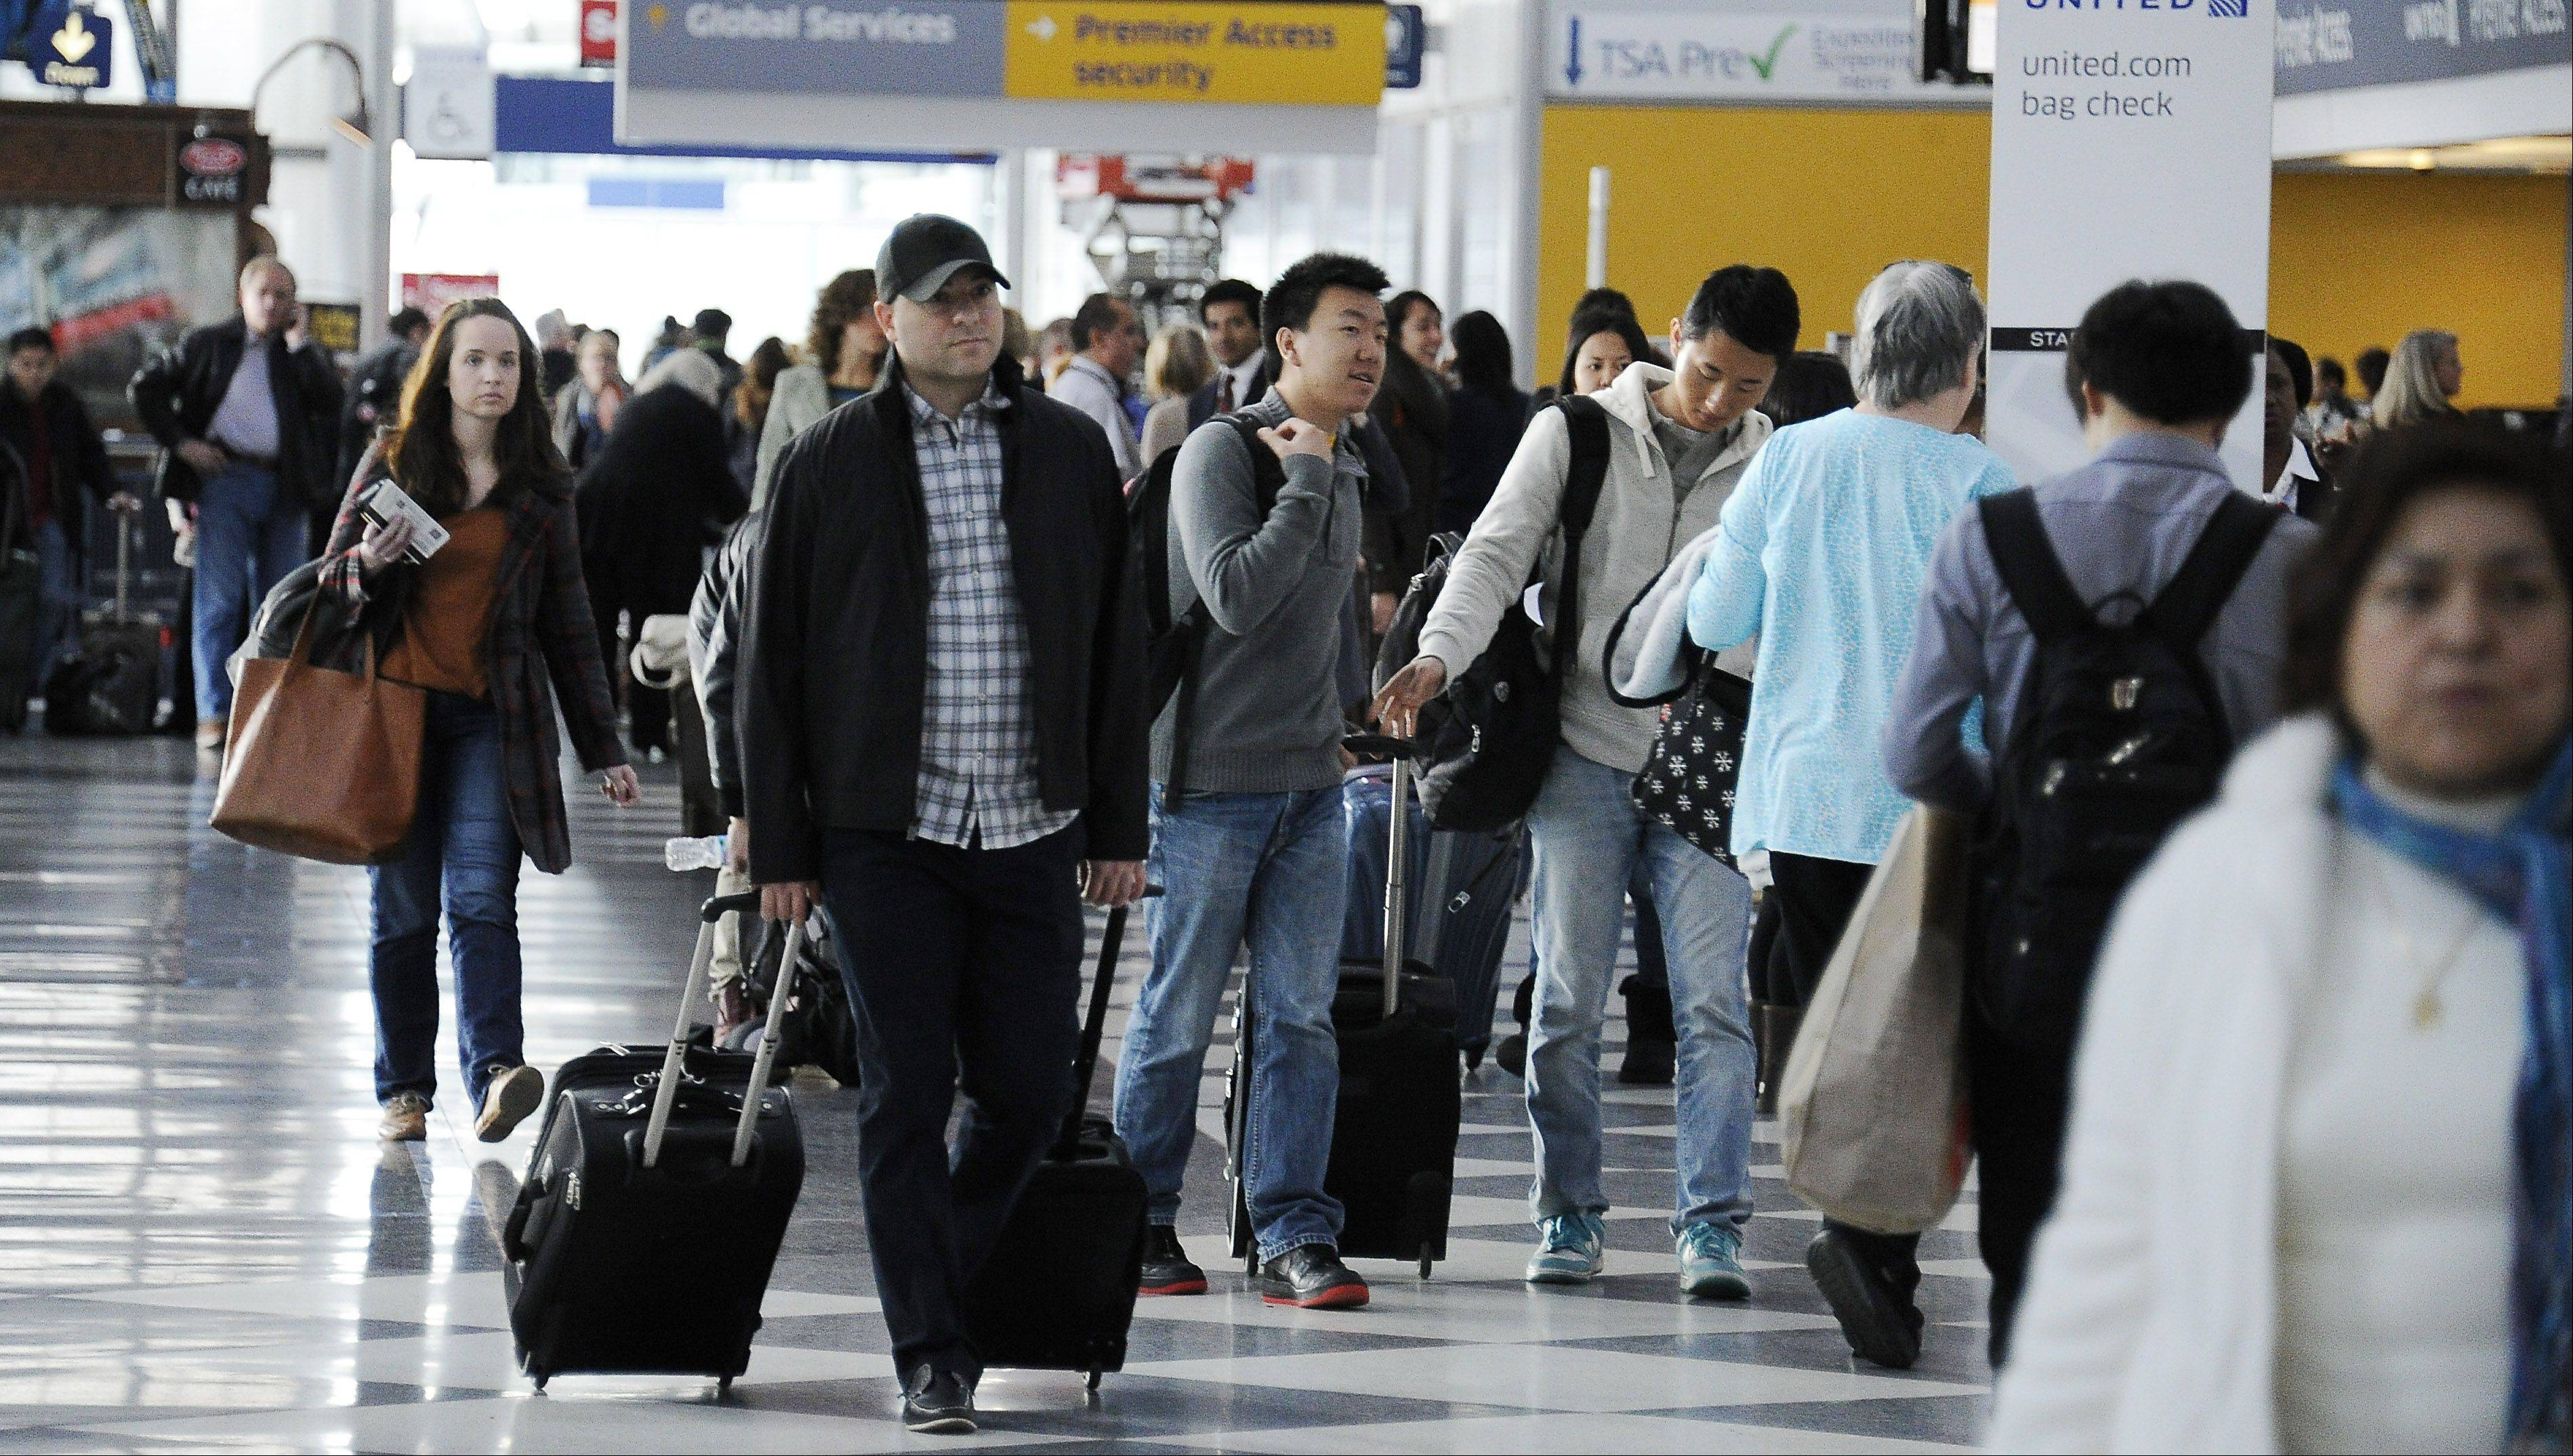 Will 2013 give rise to cheaper gas and increased flights at O'Hare International Airport after years of scaling back?